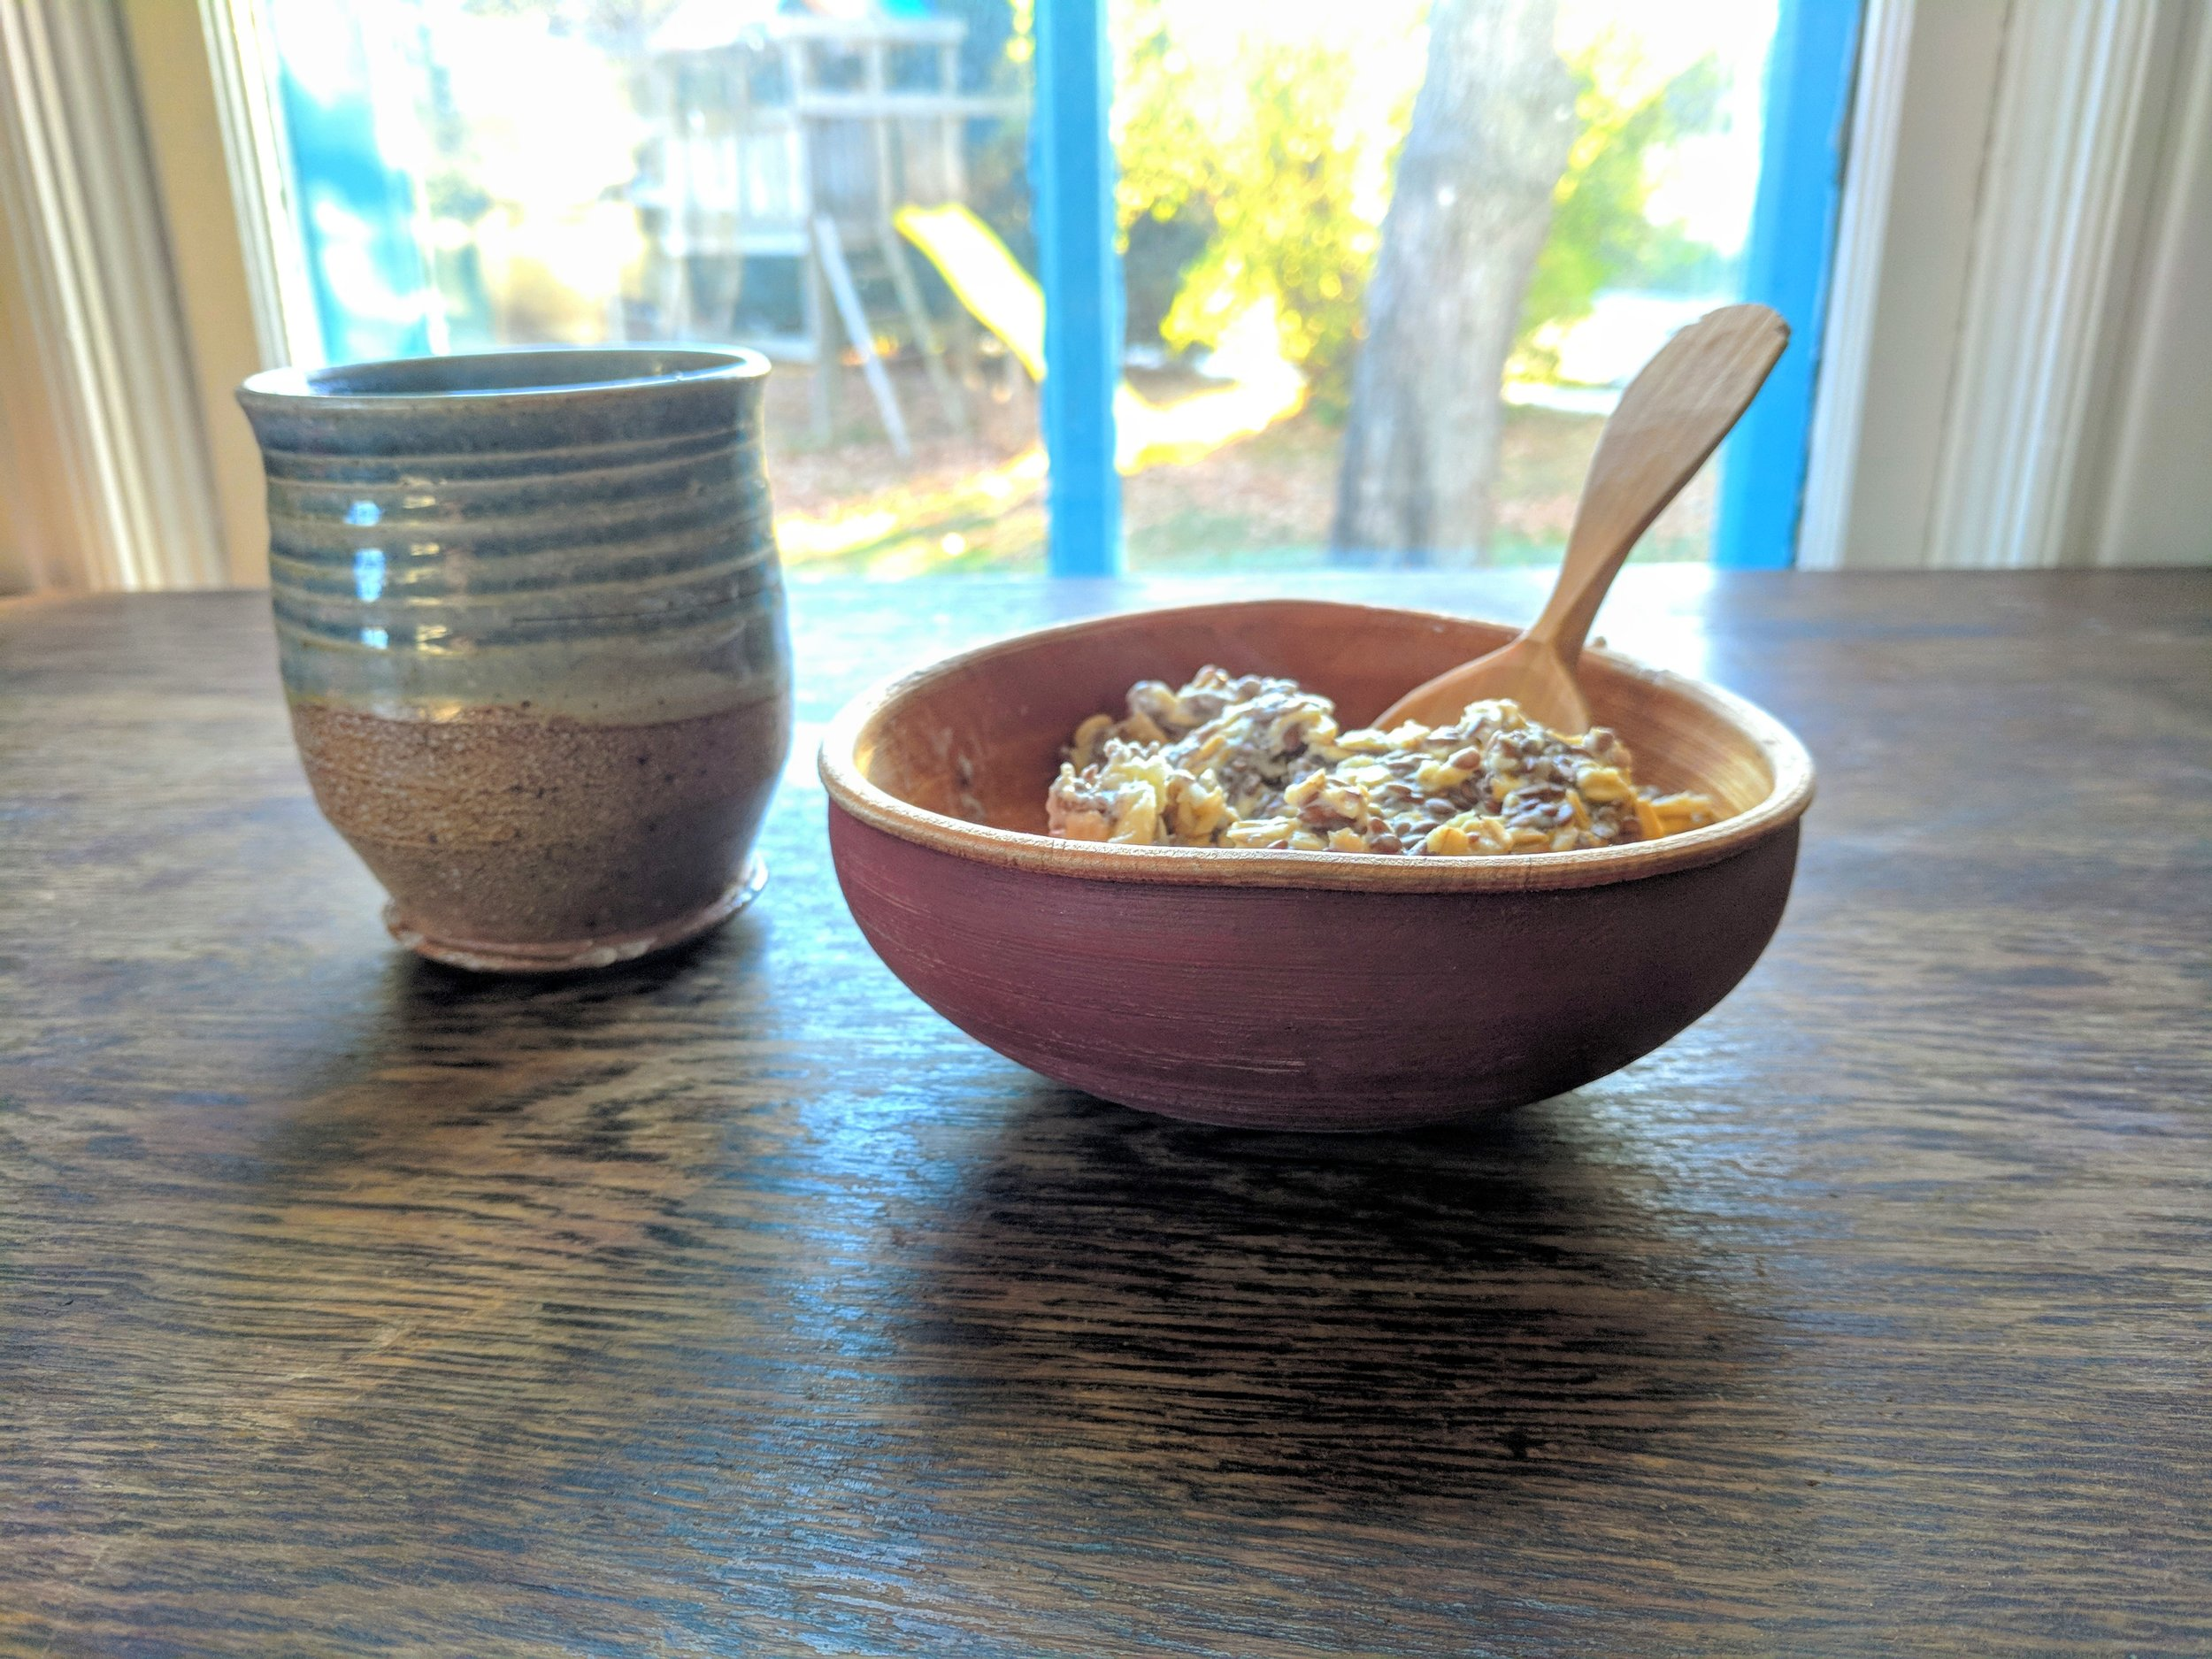 wooden bowl wooden spoon and ceramic mug